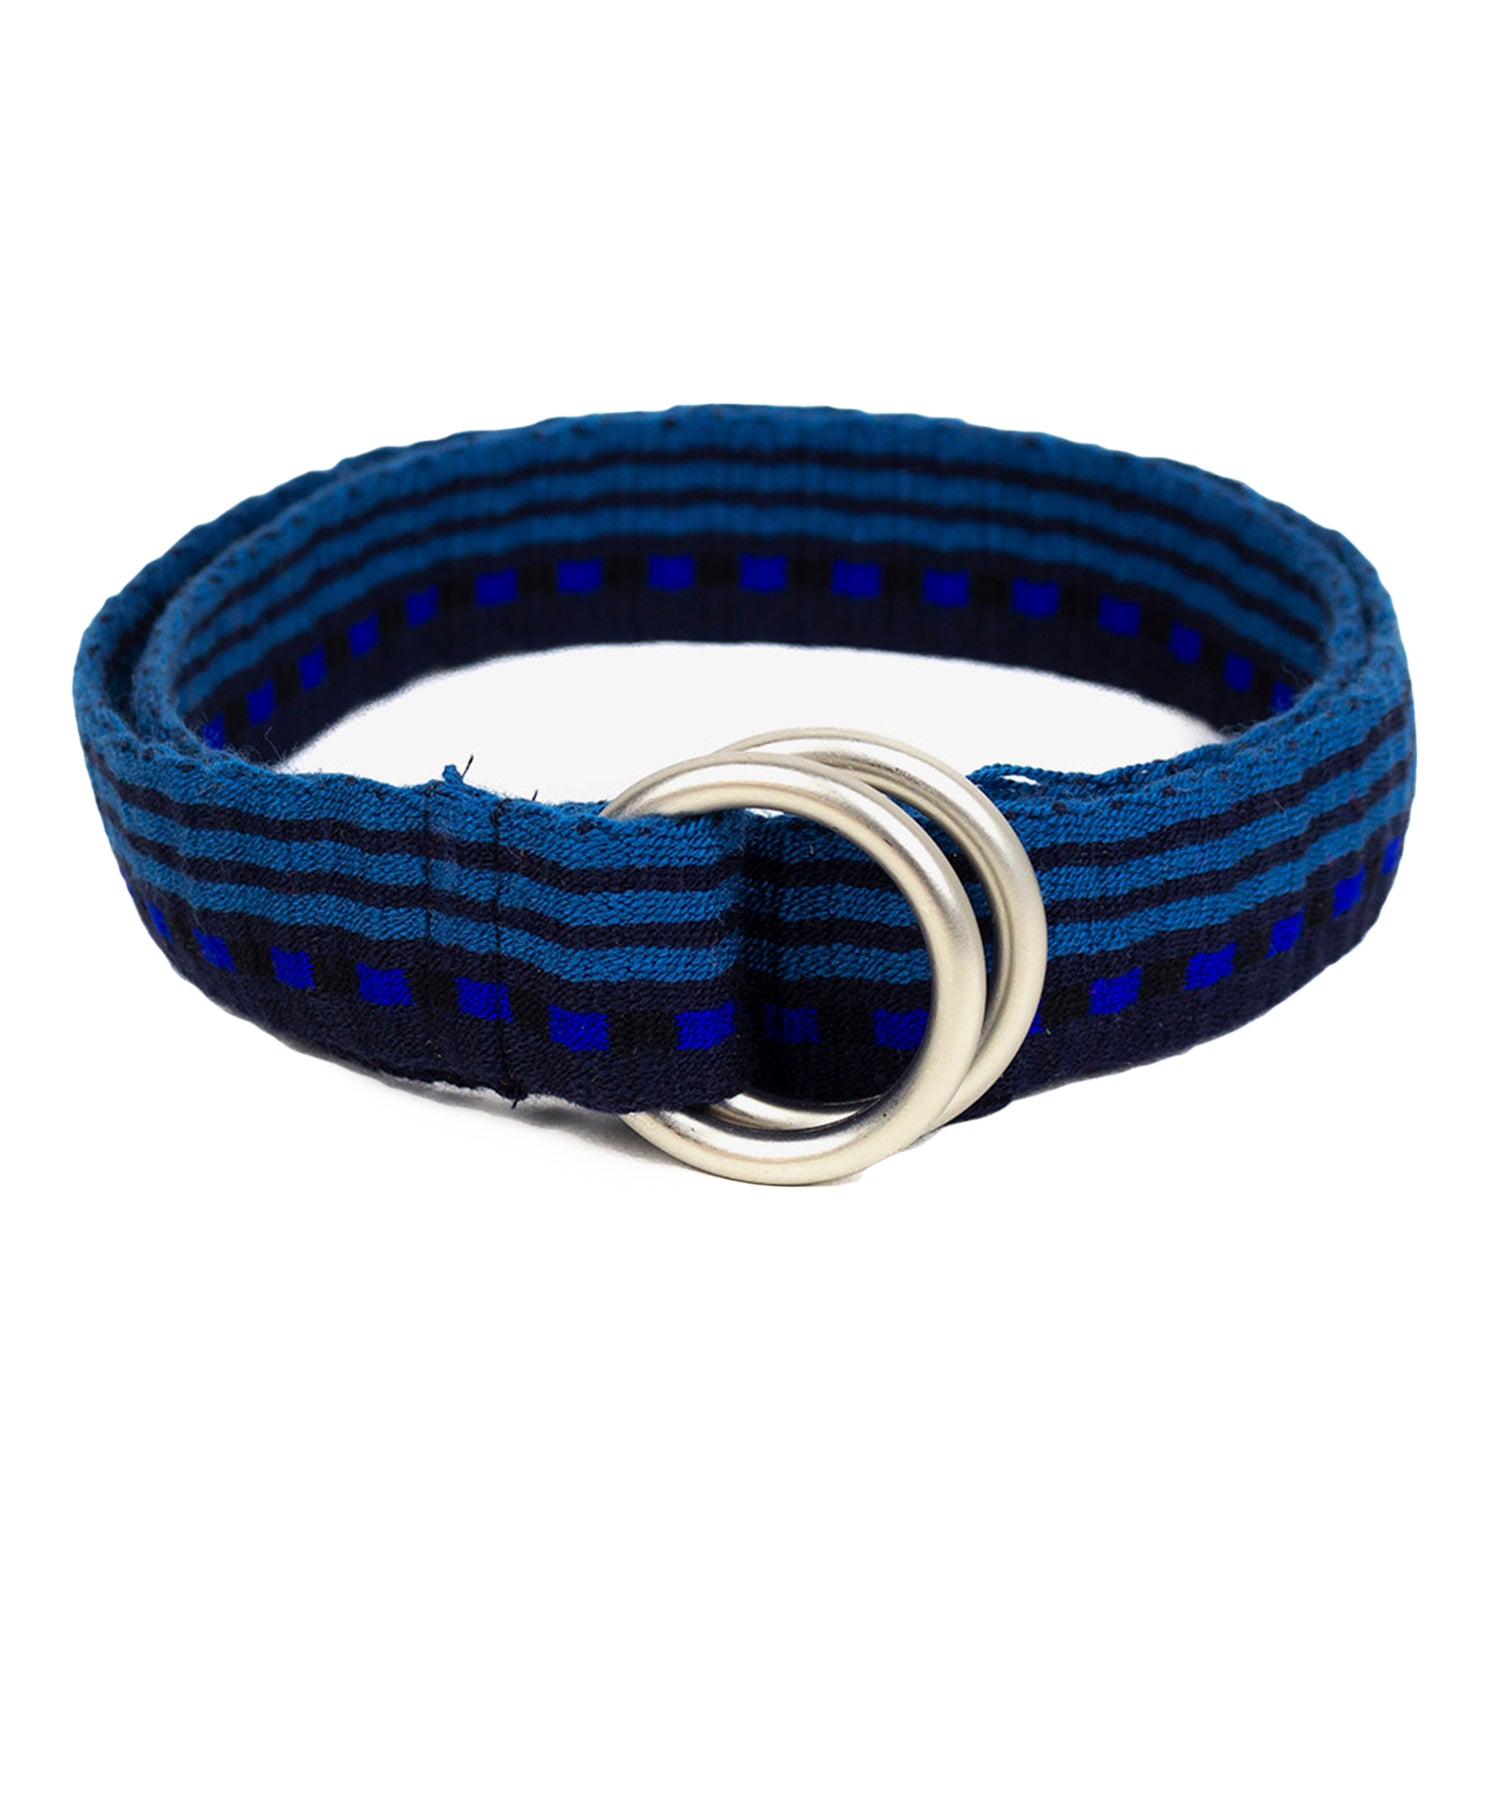 Guanábana Handmade Belt With fringe + Round Buckle in Blue